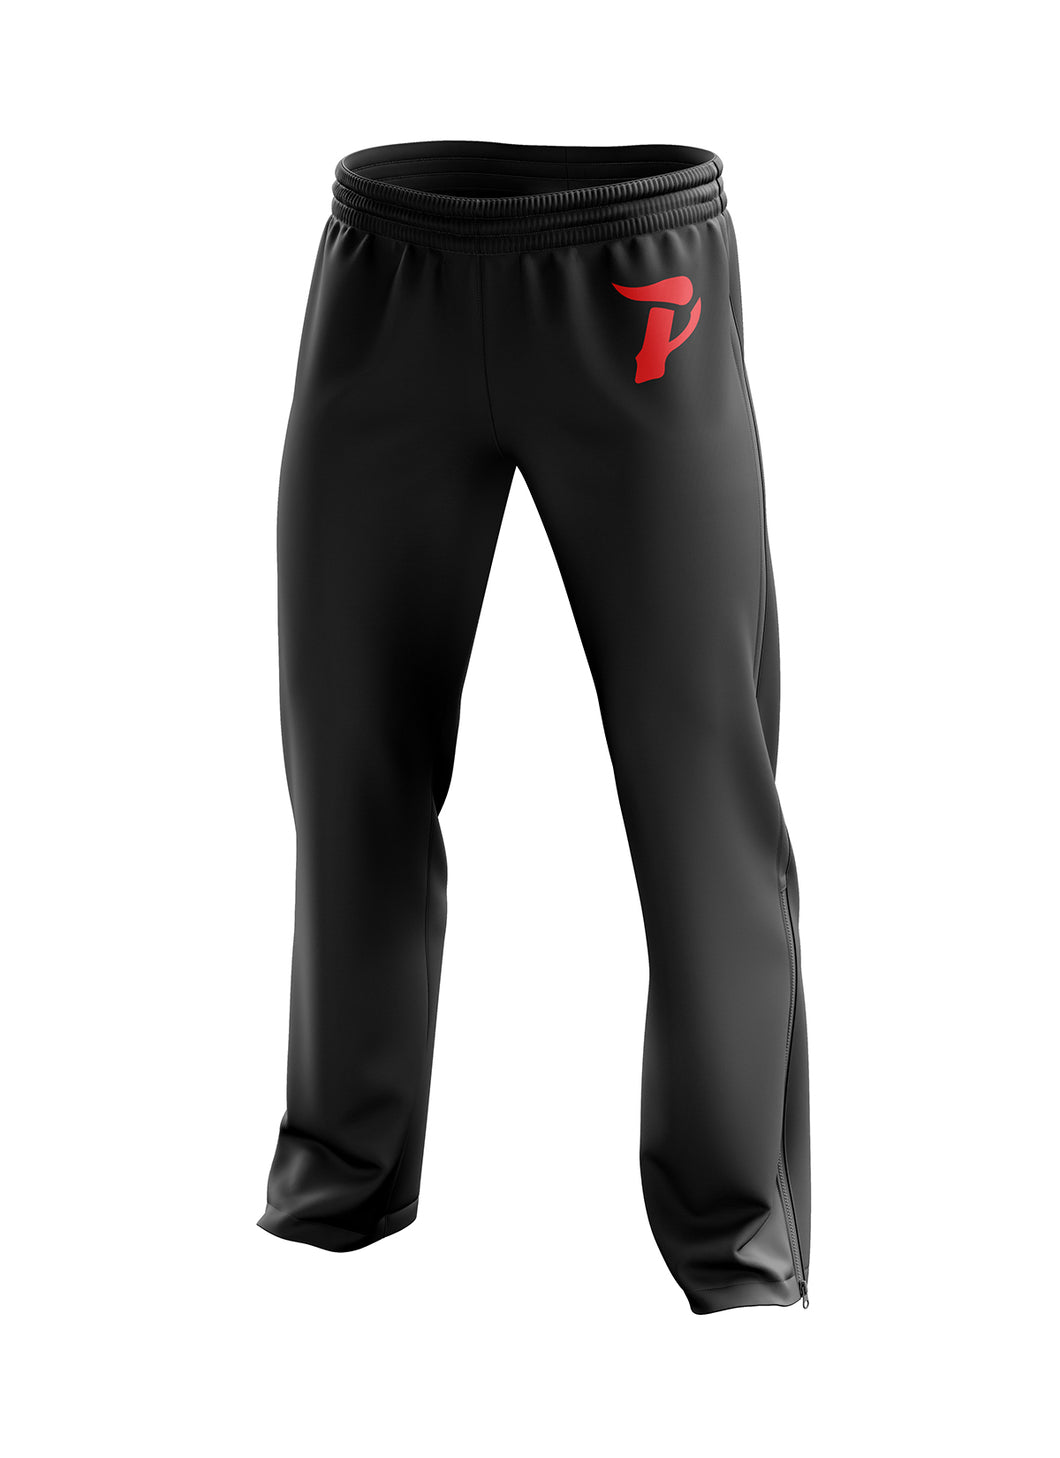 Princeton P Sweatpants